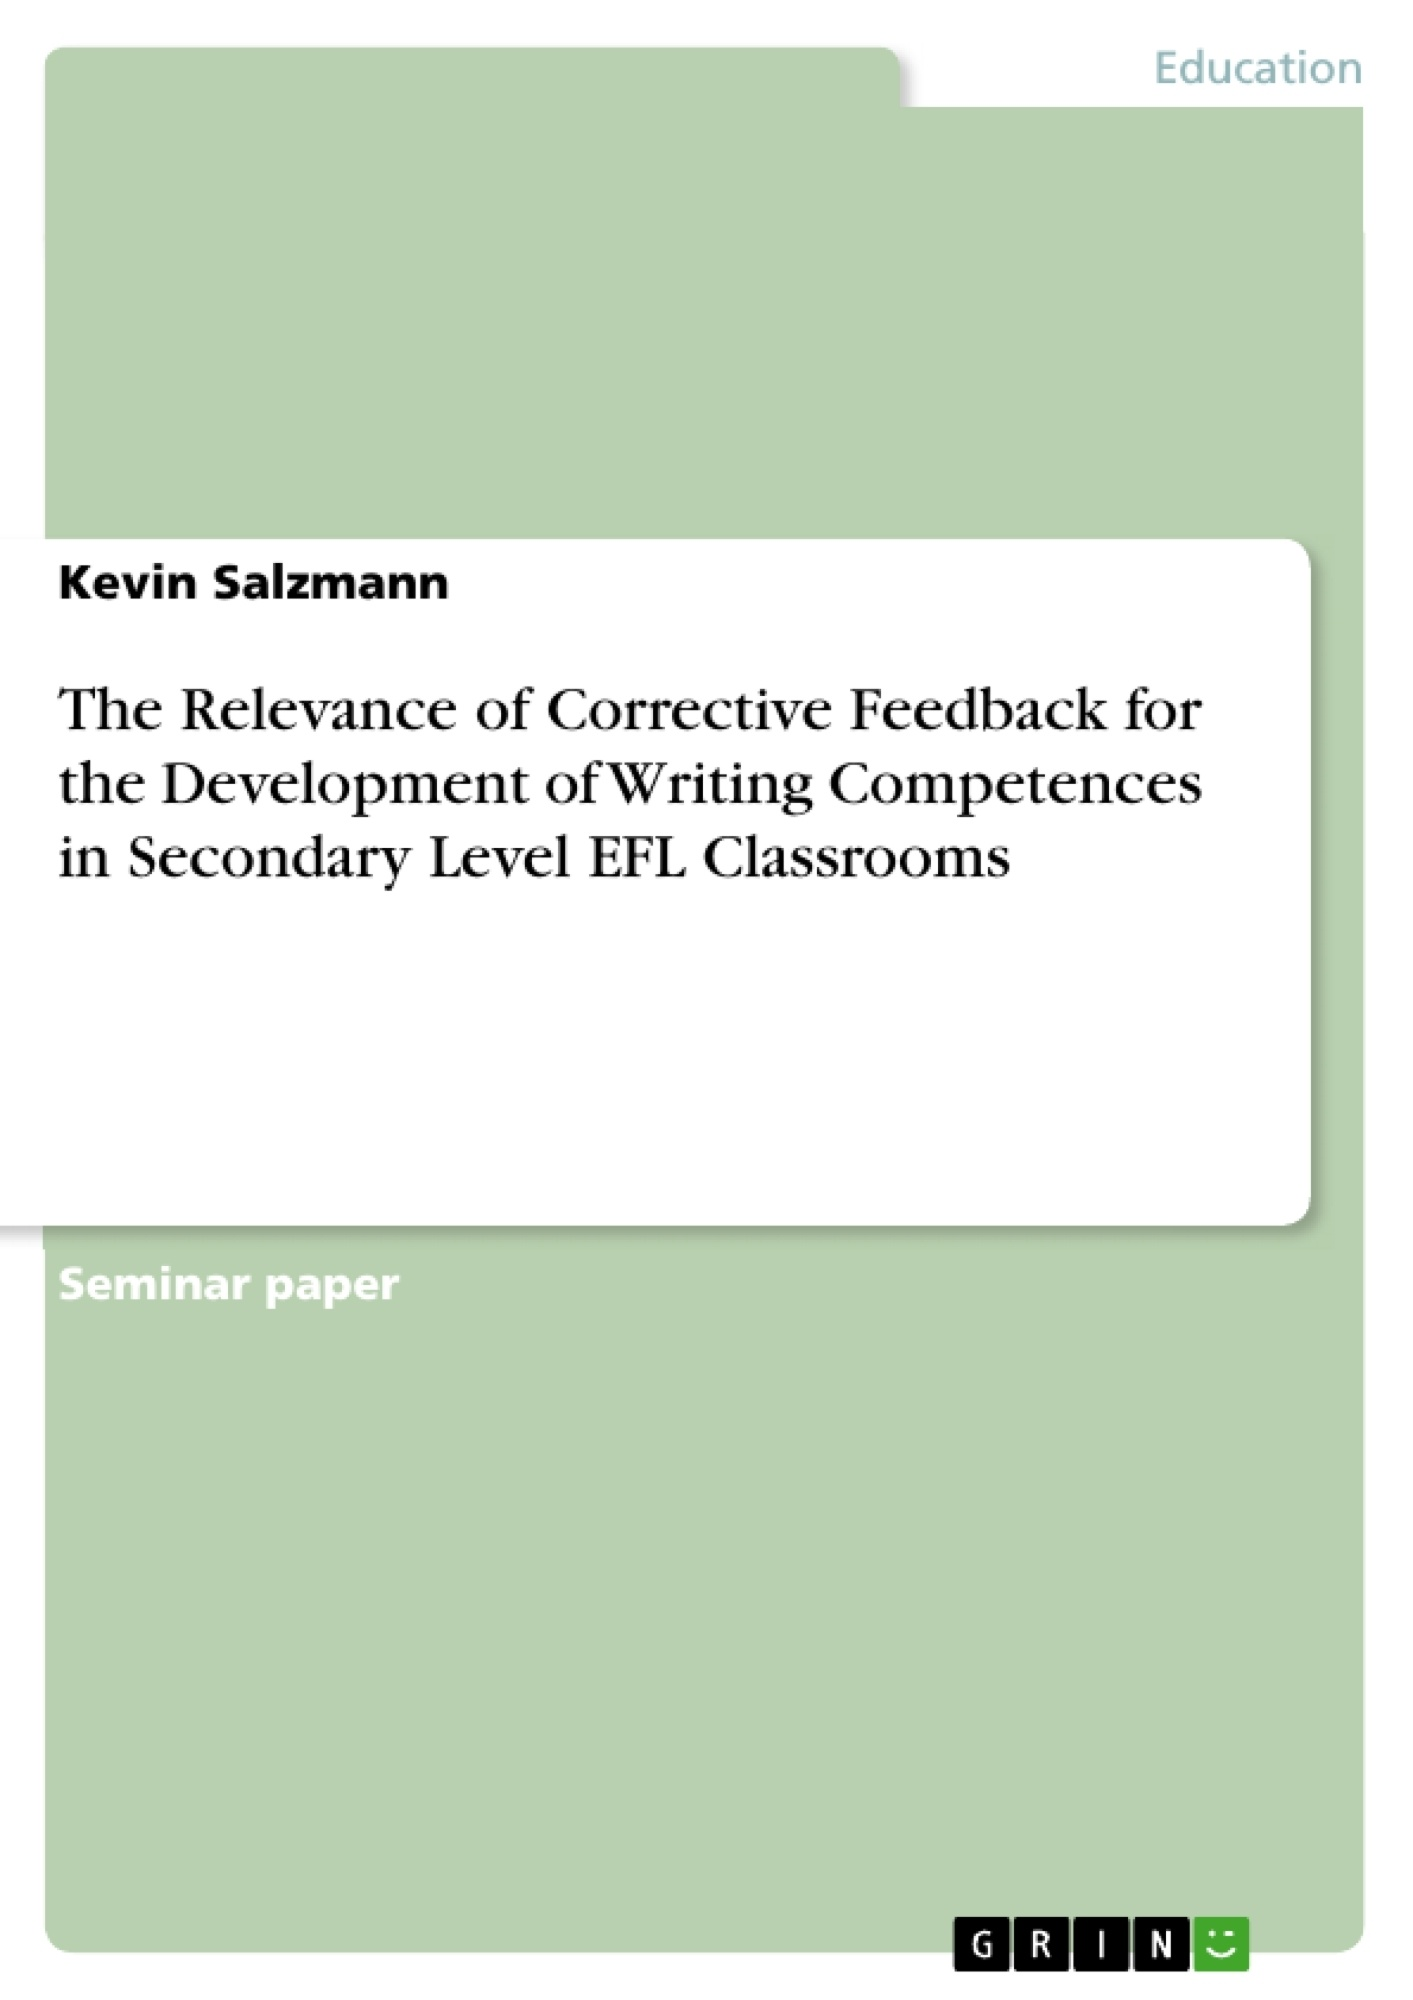 Title: The Relevance of Corrective Feedback for the Development of Writing Competences in Secondary Level EFL Classrooms